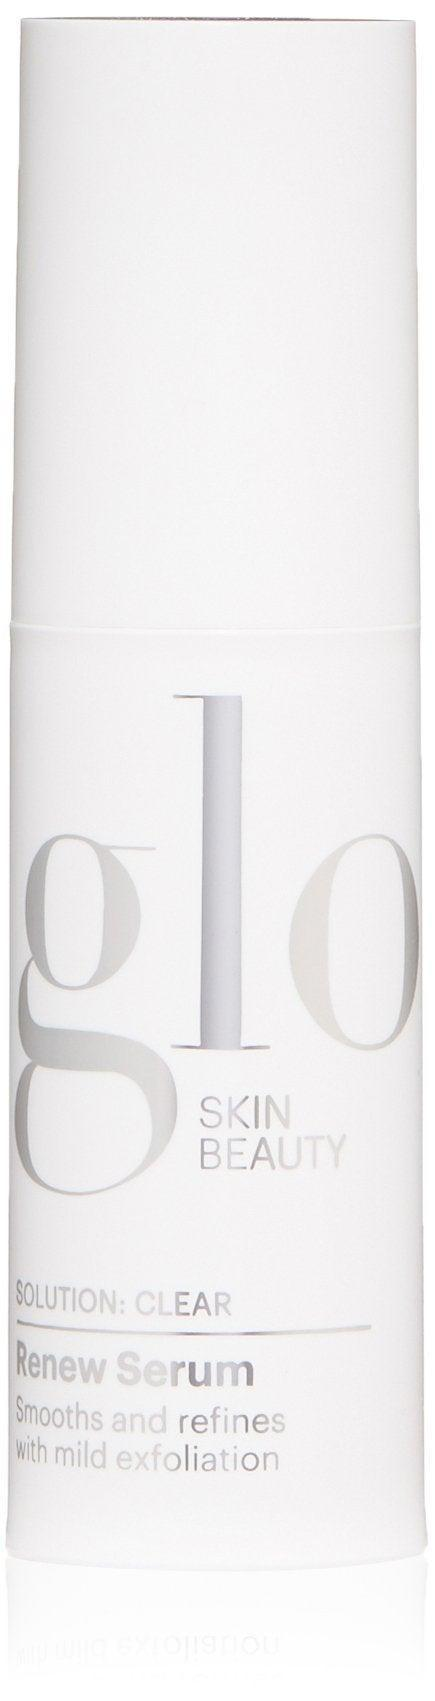 """<h3>Glo Skin Beauty Renew Serum</h3><br><strong>Lizzie</strong><br><br>""""I was skeptical because of the price, but this stuff actually works! It reduces fine line within a couple of weeks and has much better results than with any other product I've tried.""""<br><br><strong>Glo Skin Beauty</strong> Renew Serum, $, available at <a href=""""https://amzn.to/2CikWPG"""" rel=""""nofollow noopener"""" target=""""_blank"""" data-ylk=""""slk:Amazon"""" class=""""link rapid-noclick-resp"""">Amazon</a>"""